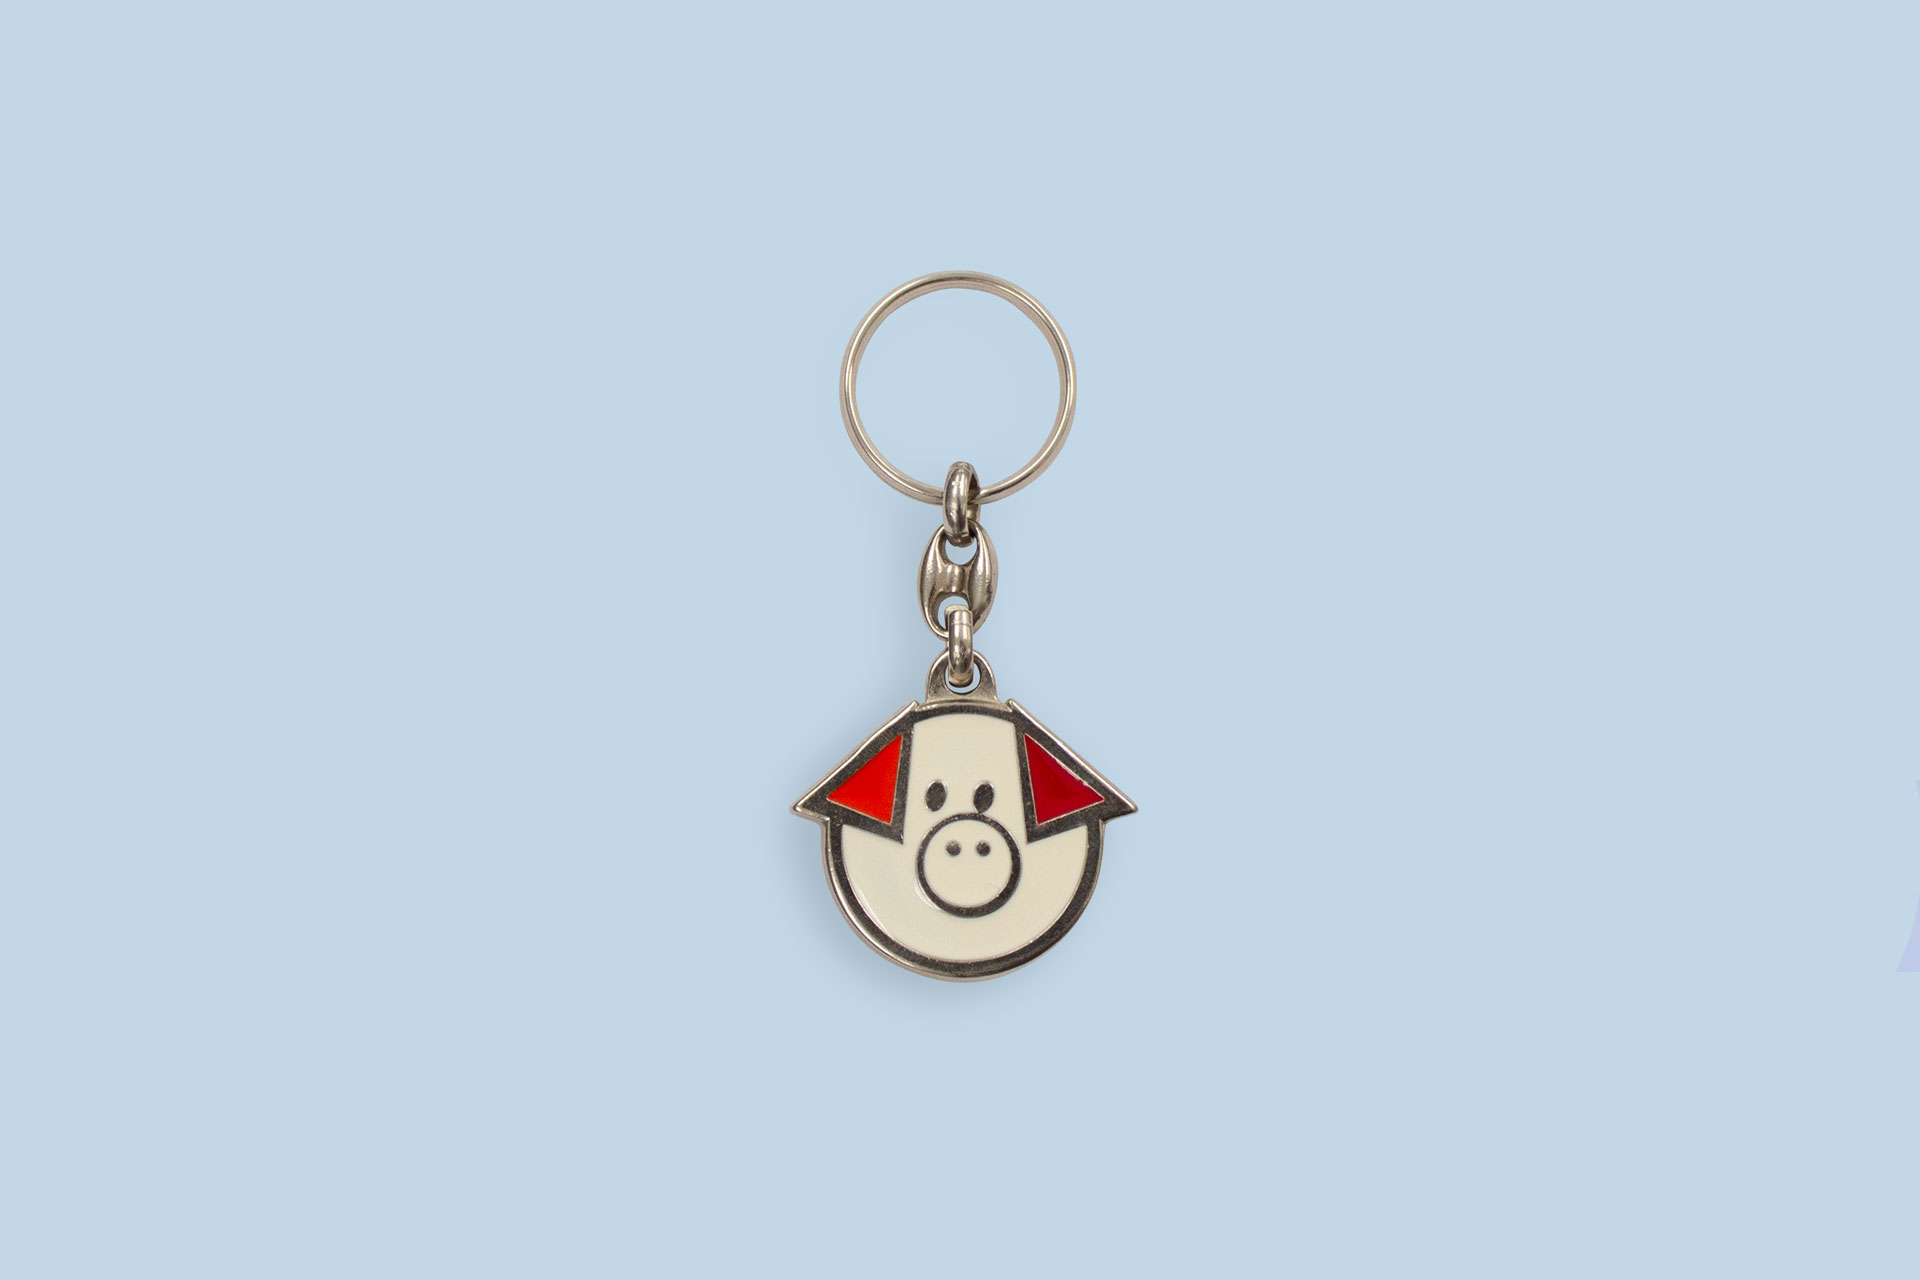 Nickel-plated enamel Keychain